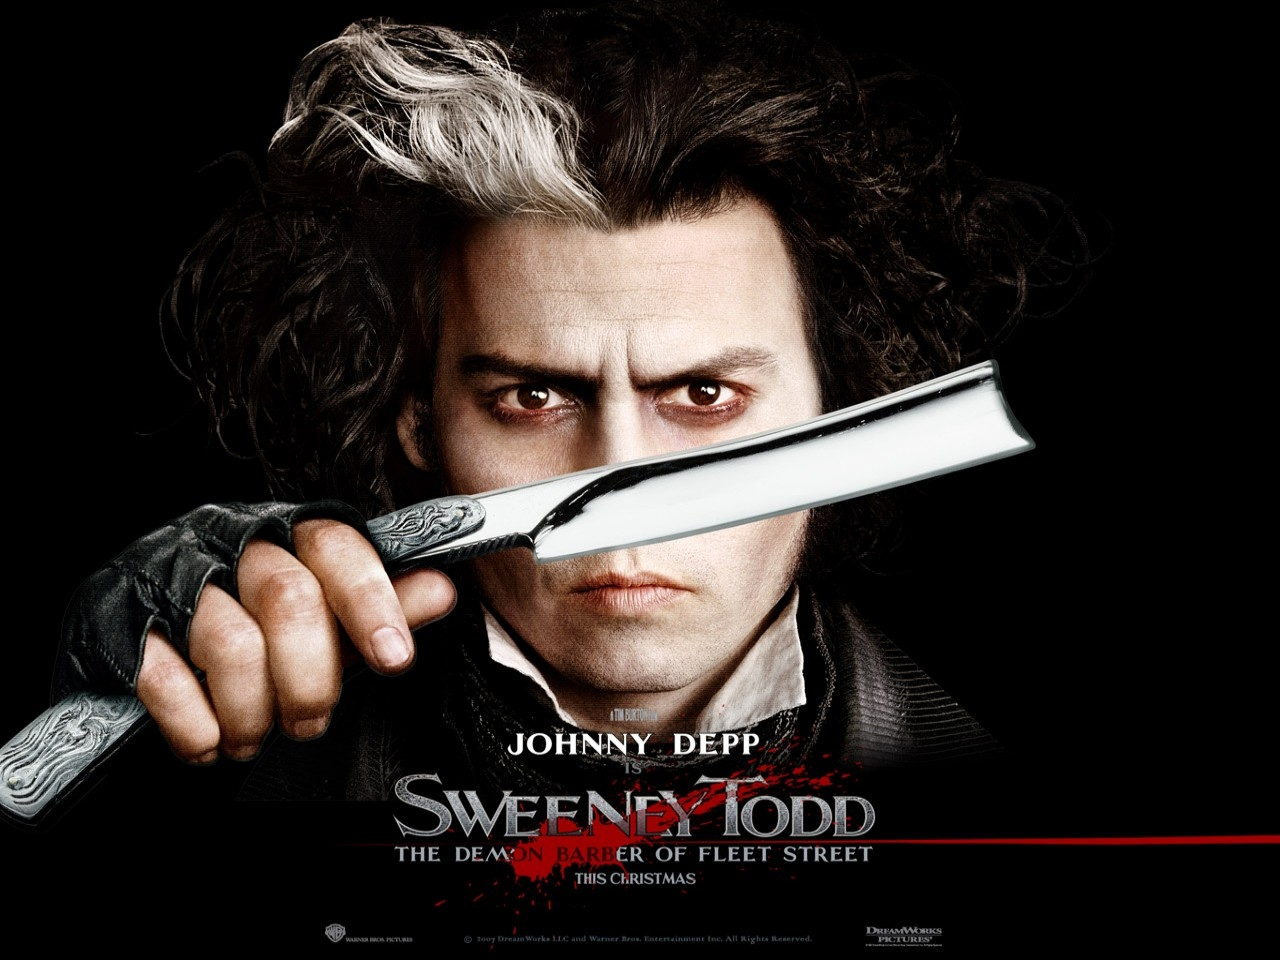 Wallpaper di Johnny Depp nel film Sweeney Todd - Il diabolico barbiere di Fleet Street